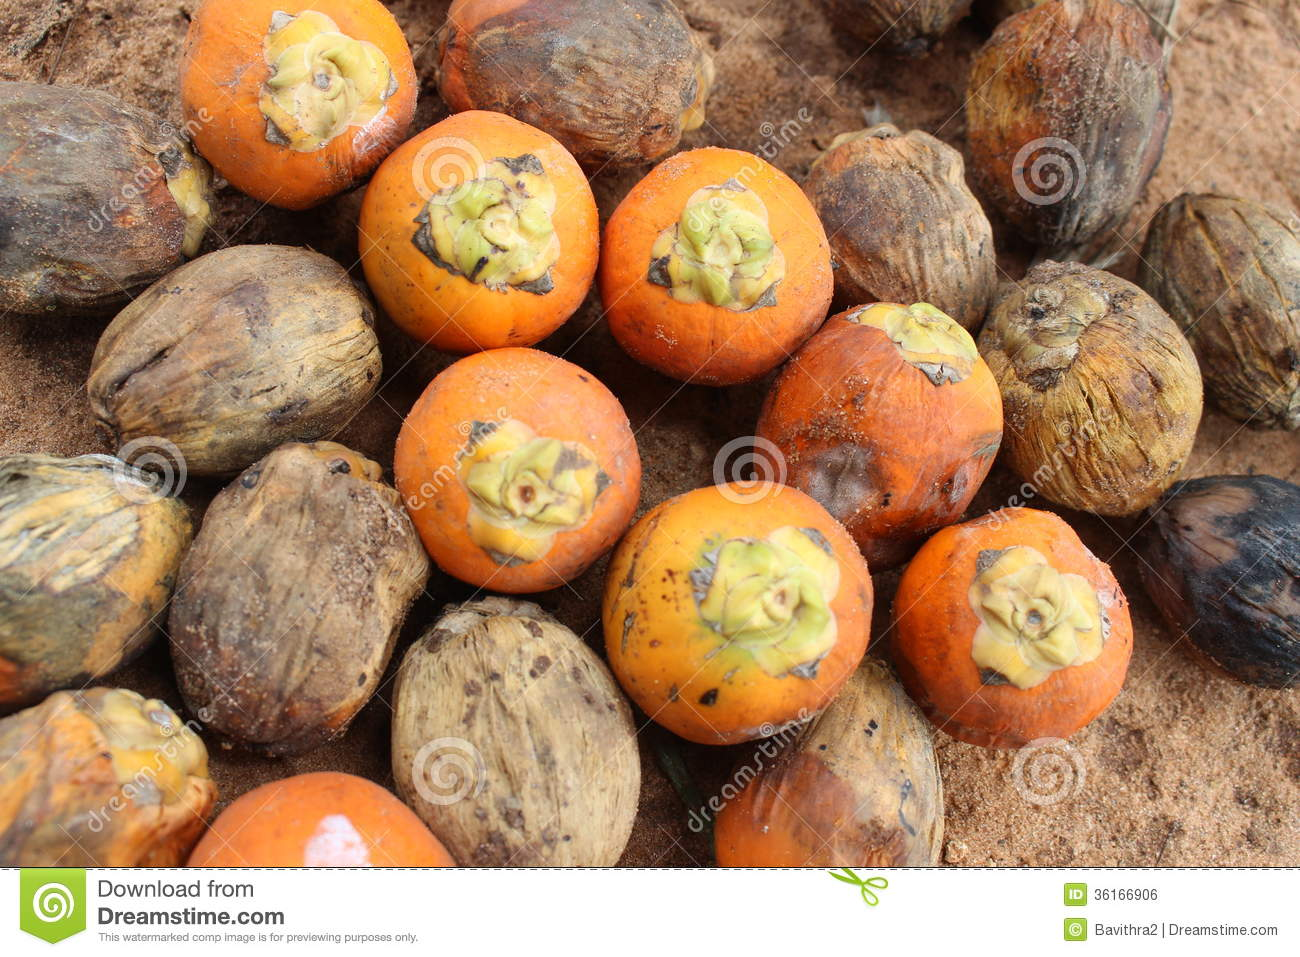 Download Betel Nut or Areca Nut stock photo. Image of digestive - 36166906